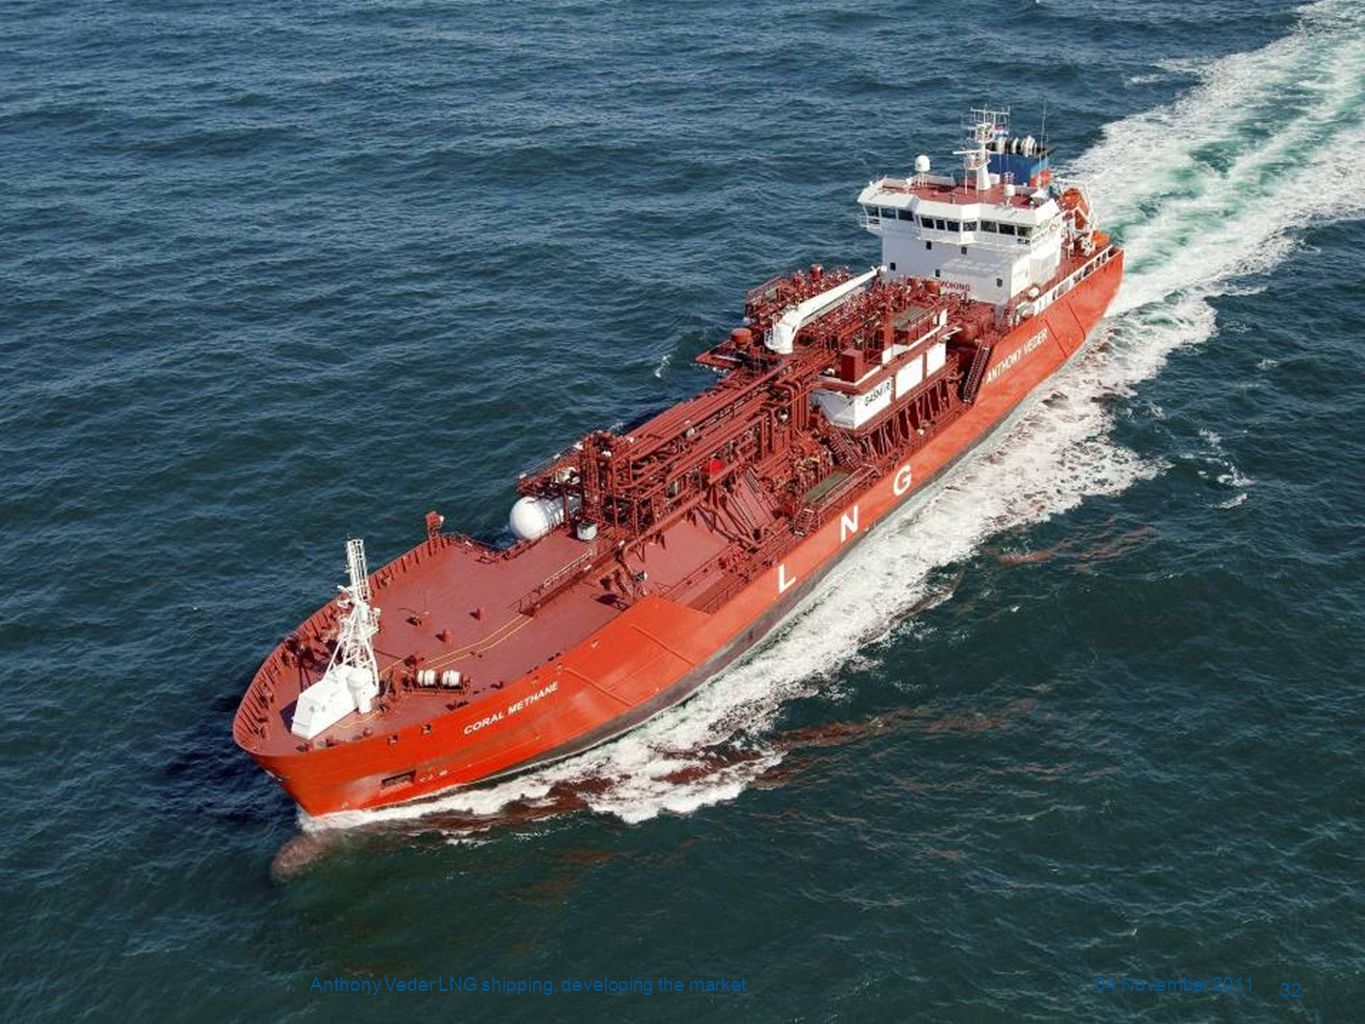 Anthony Veder LNG shipping, developing the market